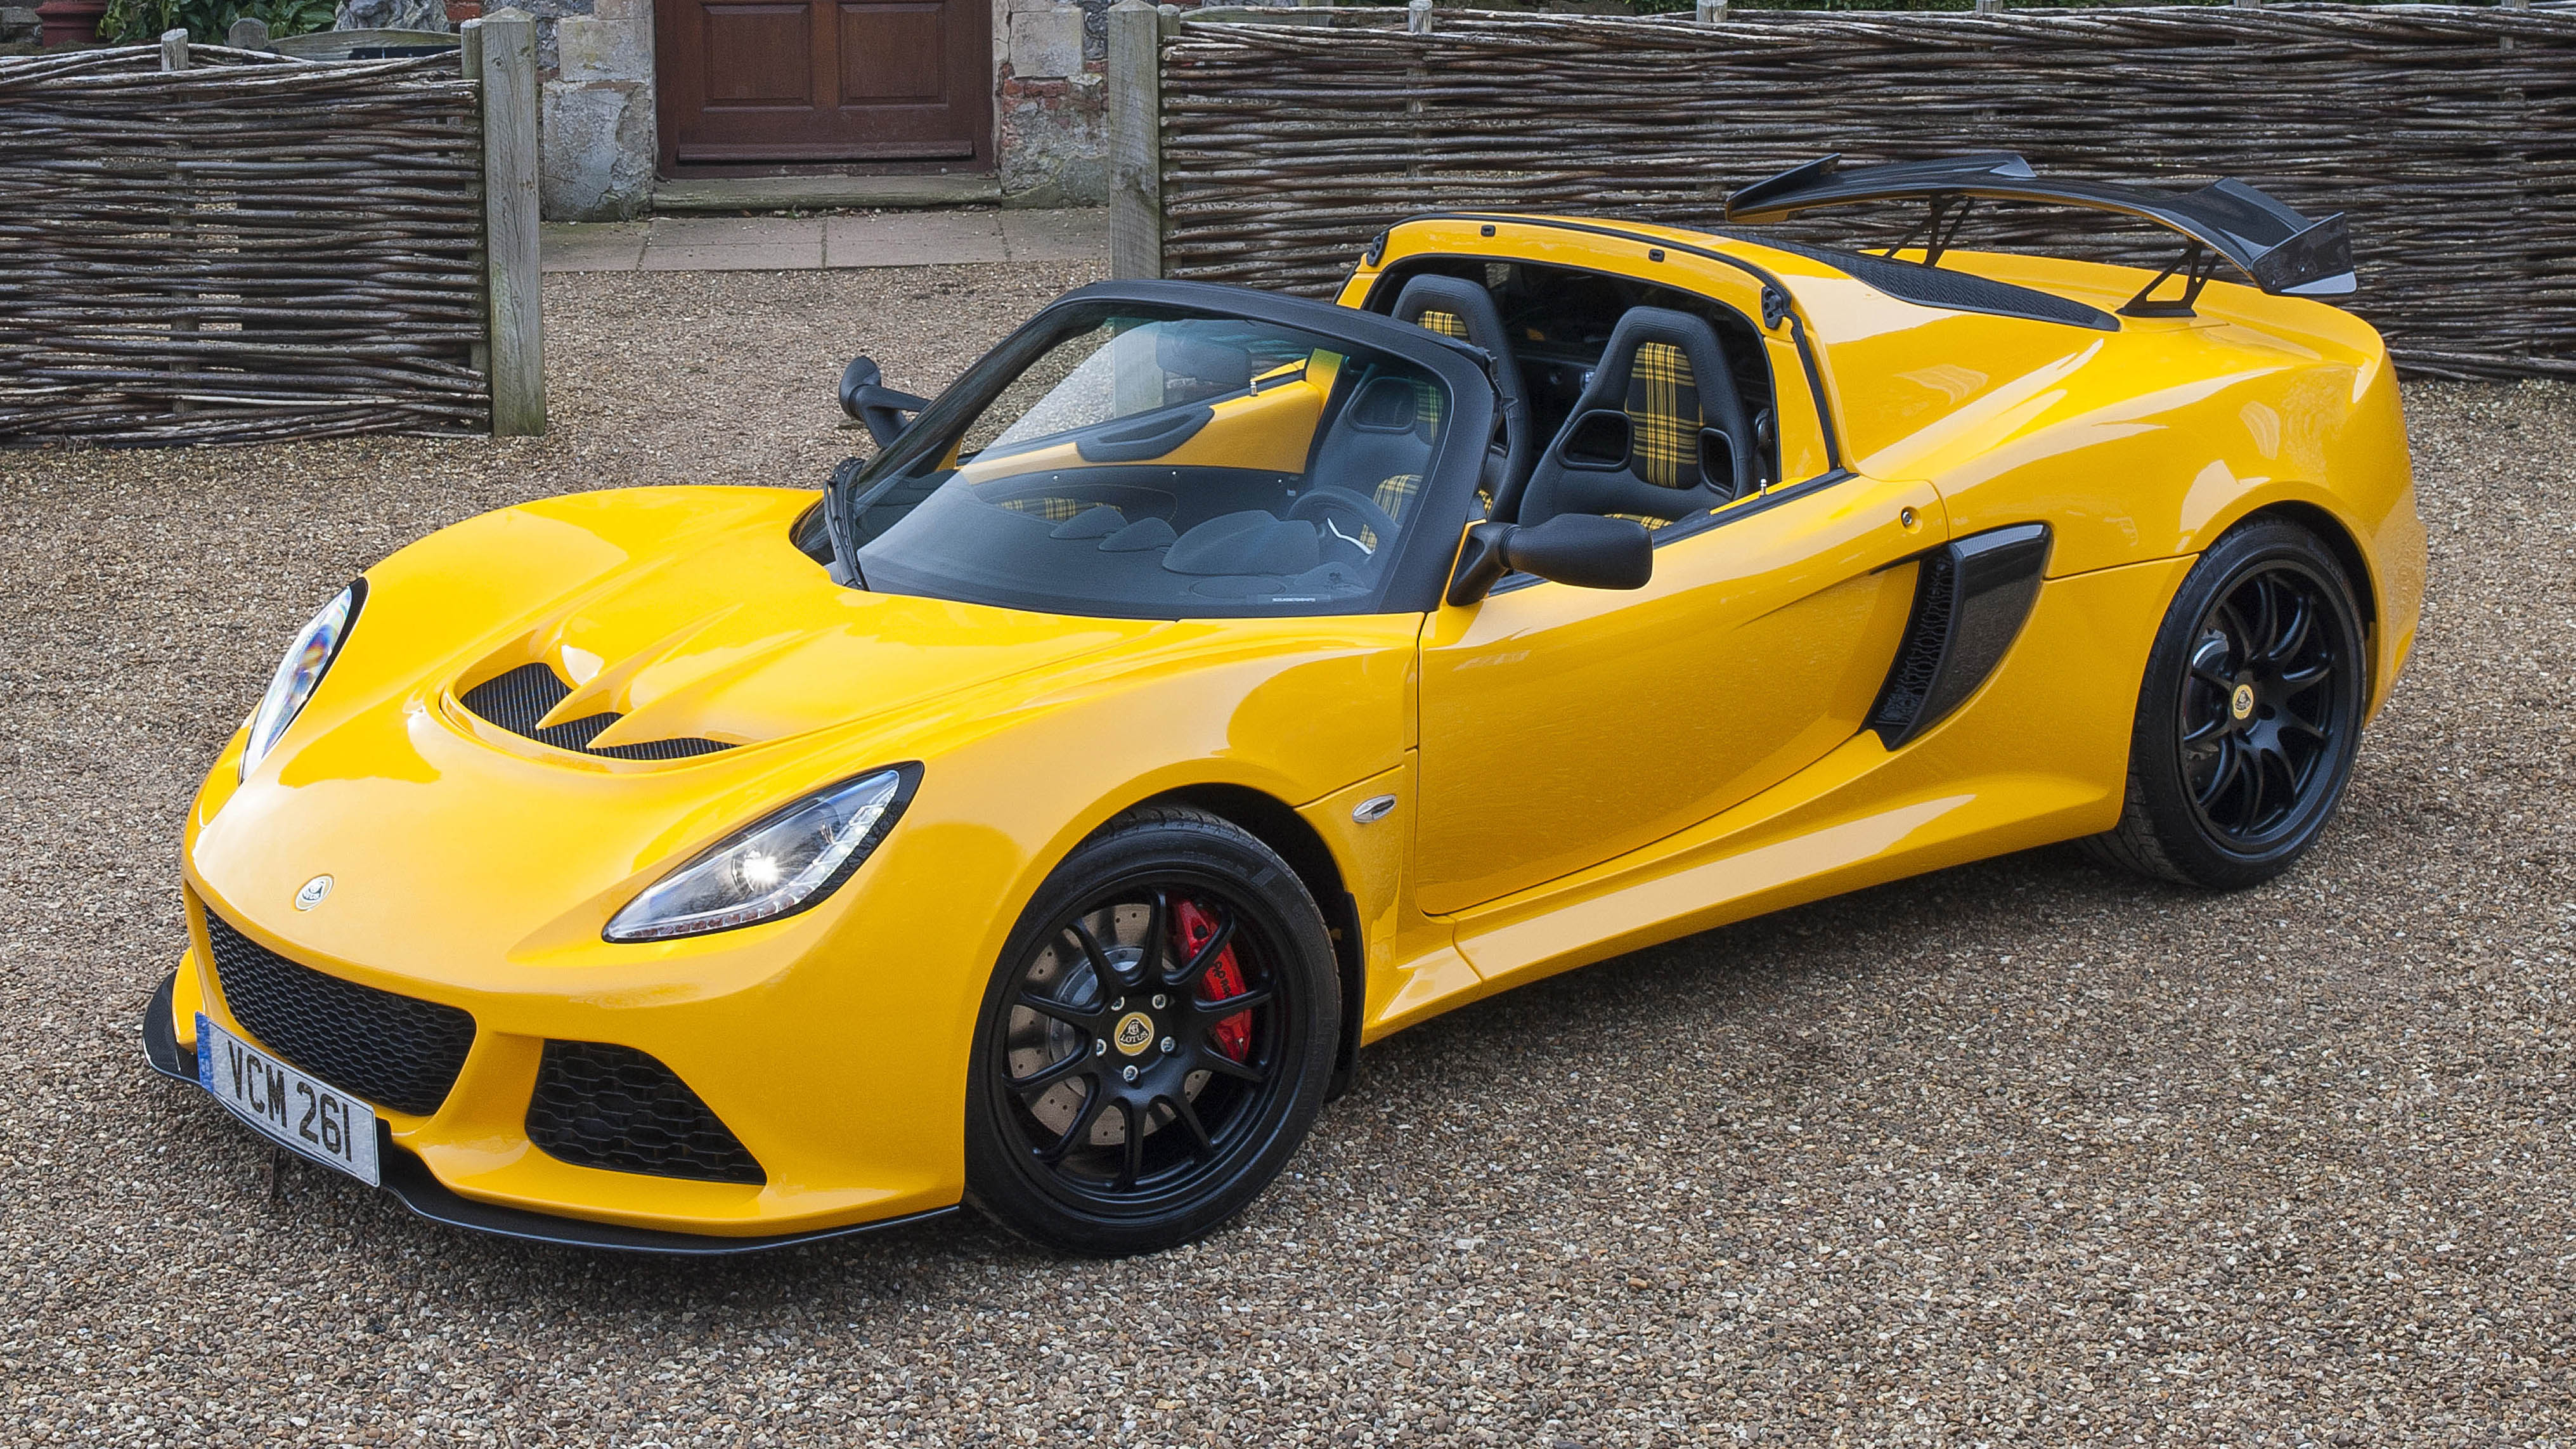 2016 Ford Gt Top Speed >> It's the Lotus Exige Sport 350 Roadster | Top Gear